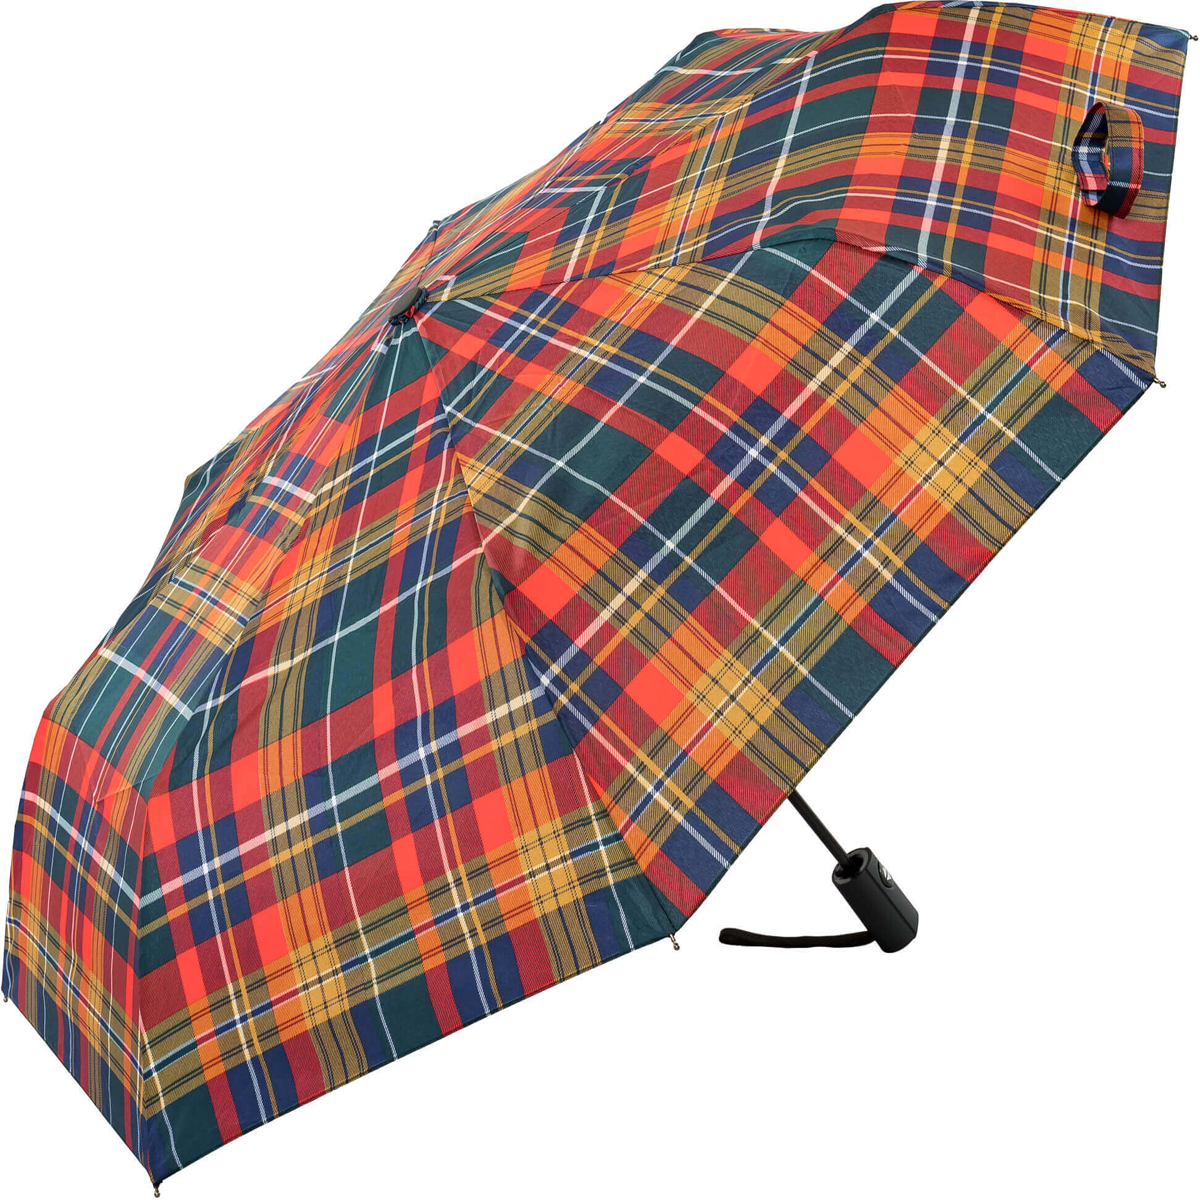 Buchanan Style Tartan Auto Open and Close Umbrella (31905)